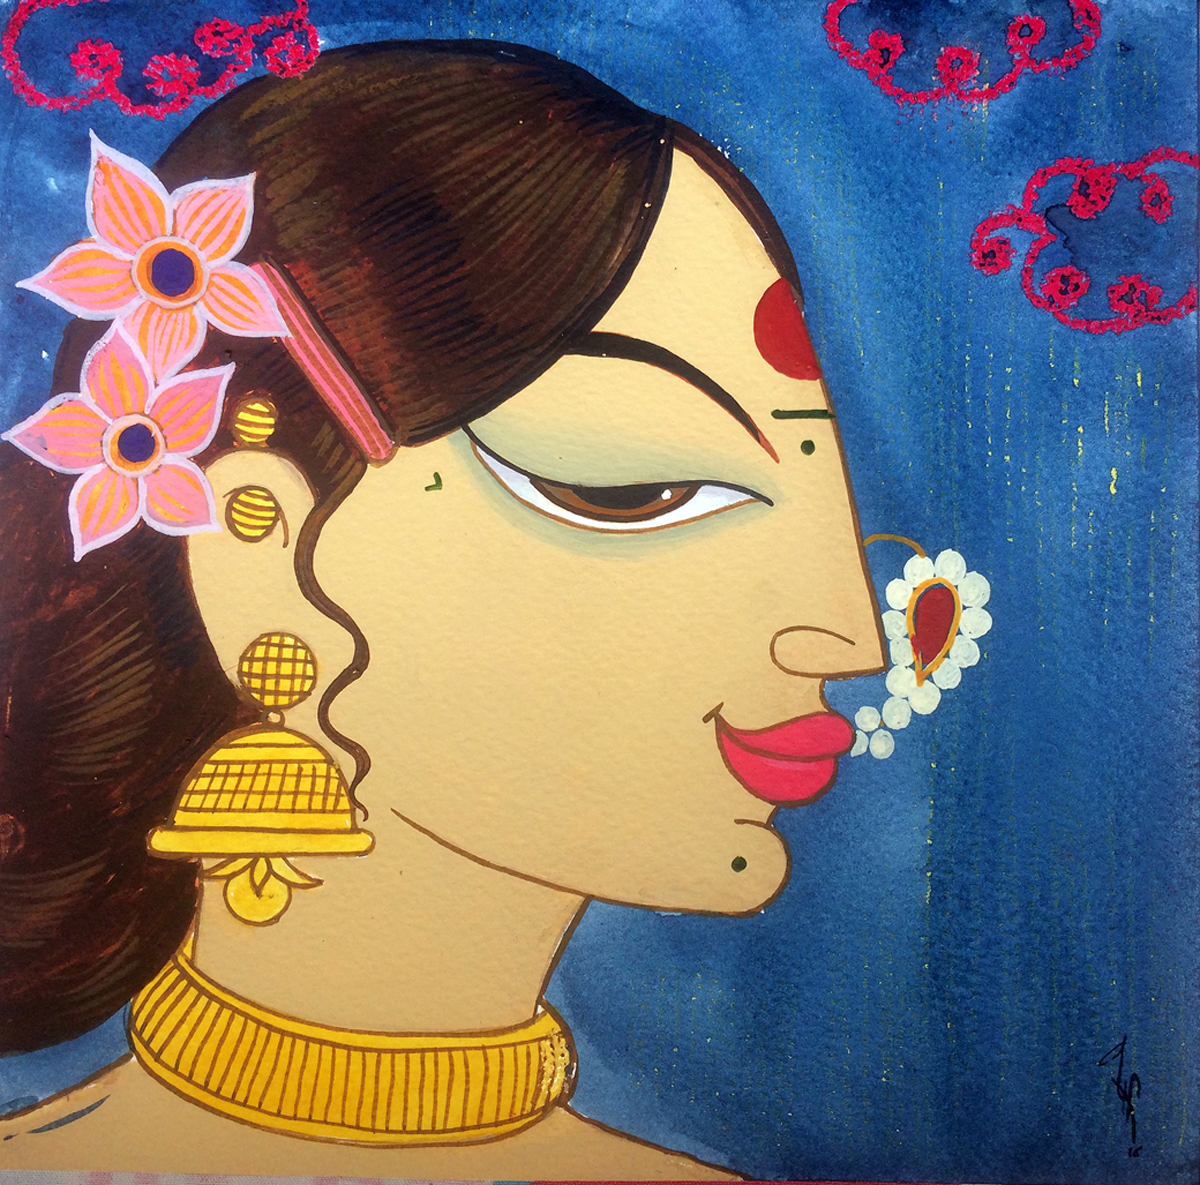 Abhijit Banerjee Buy Painting Face 31 Artwork No 10002 by Indian Artist ...